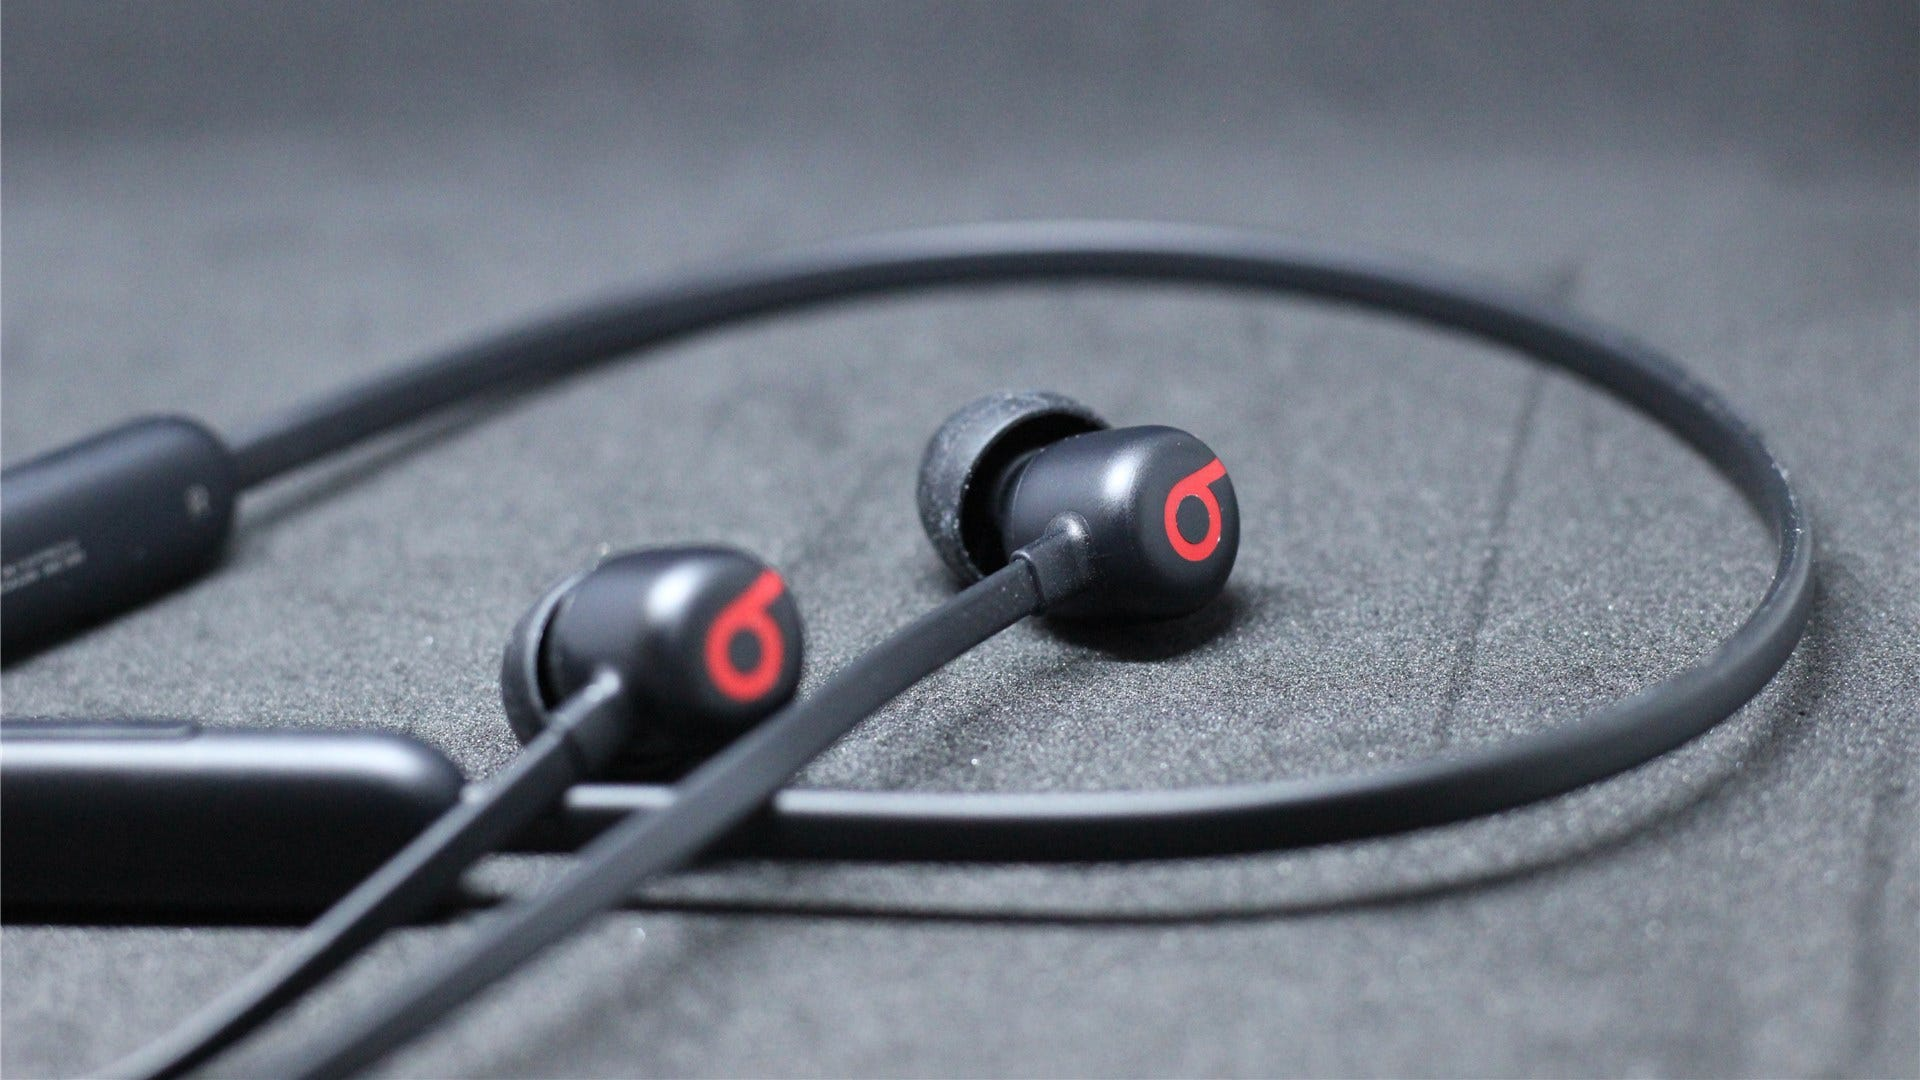 Highlighting the Beats logo on both earbuds